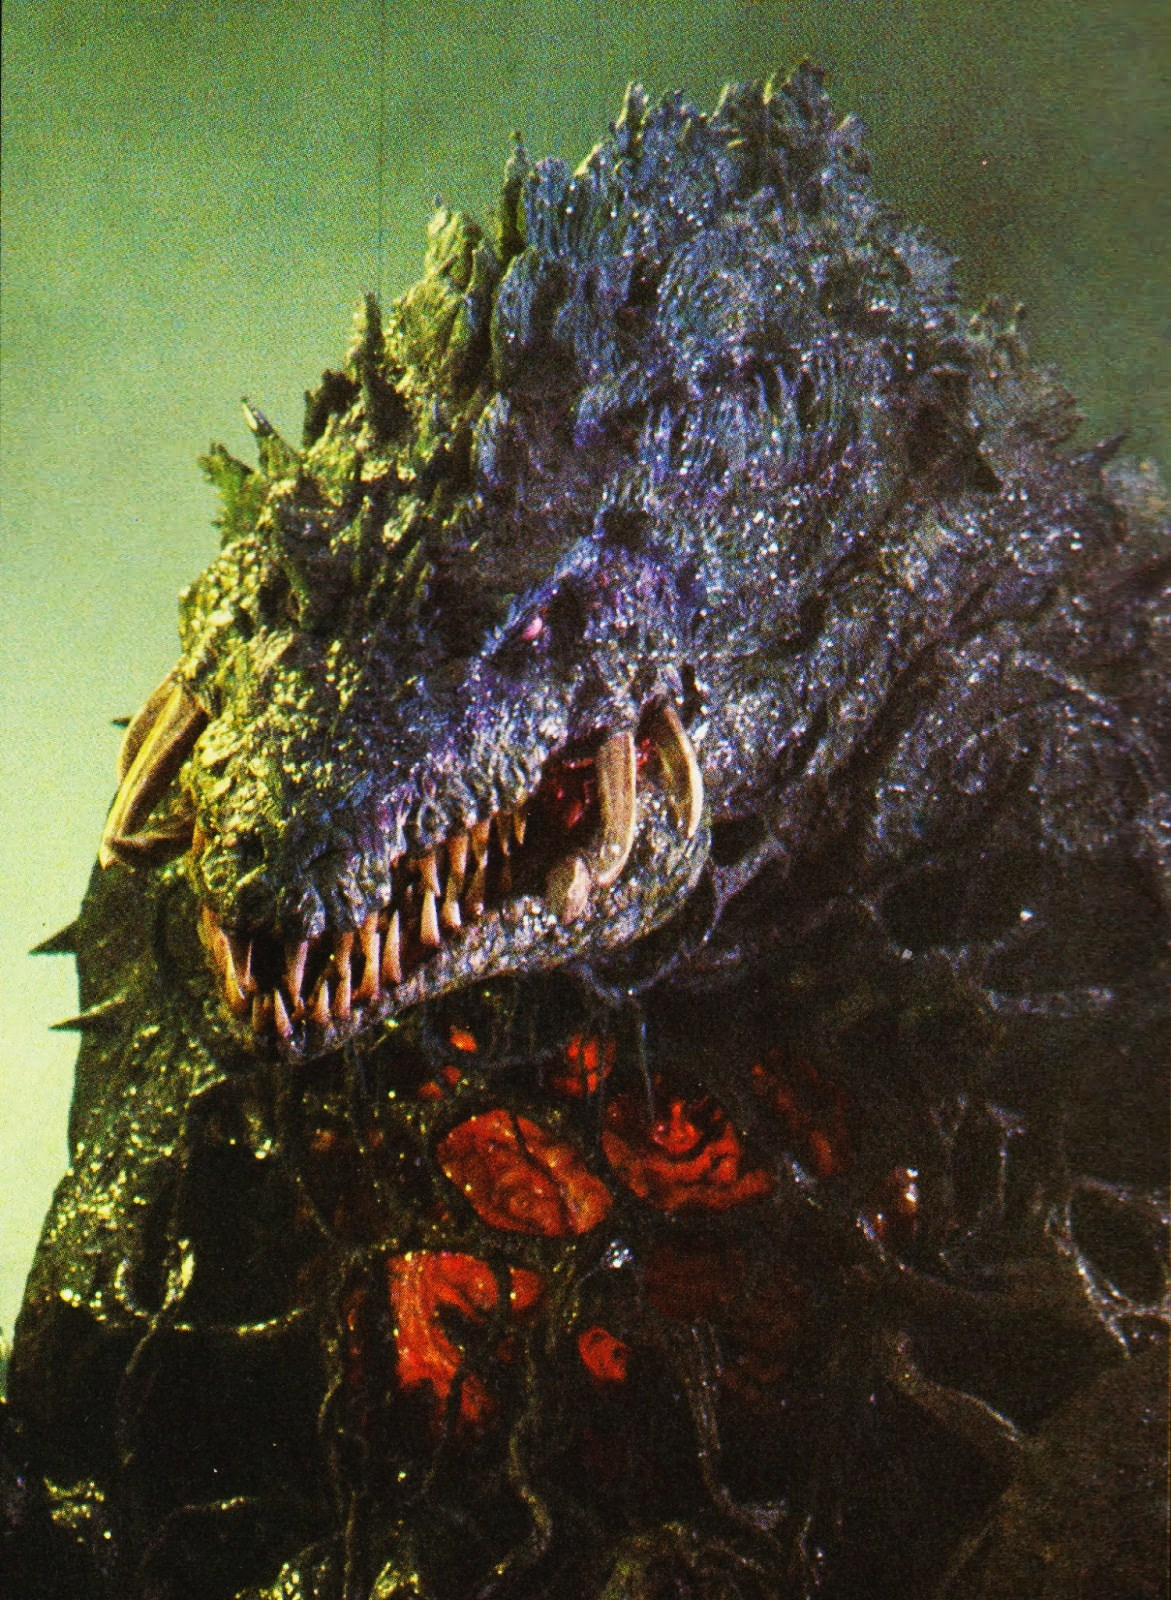 http://vignette4.wikia.nocookie.net/godzilla/images/1/1a/GVB_-_Biollante_Head_Shot.jpg/revision/latest?cb=20140331193011 Mecha